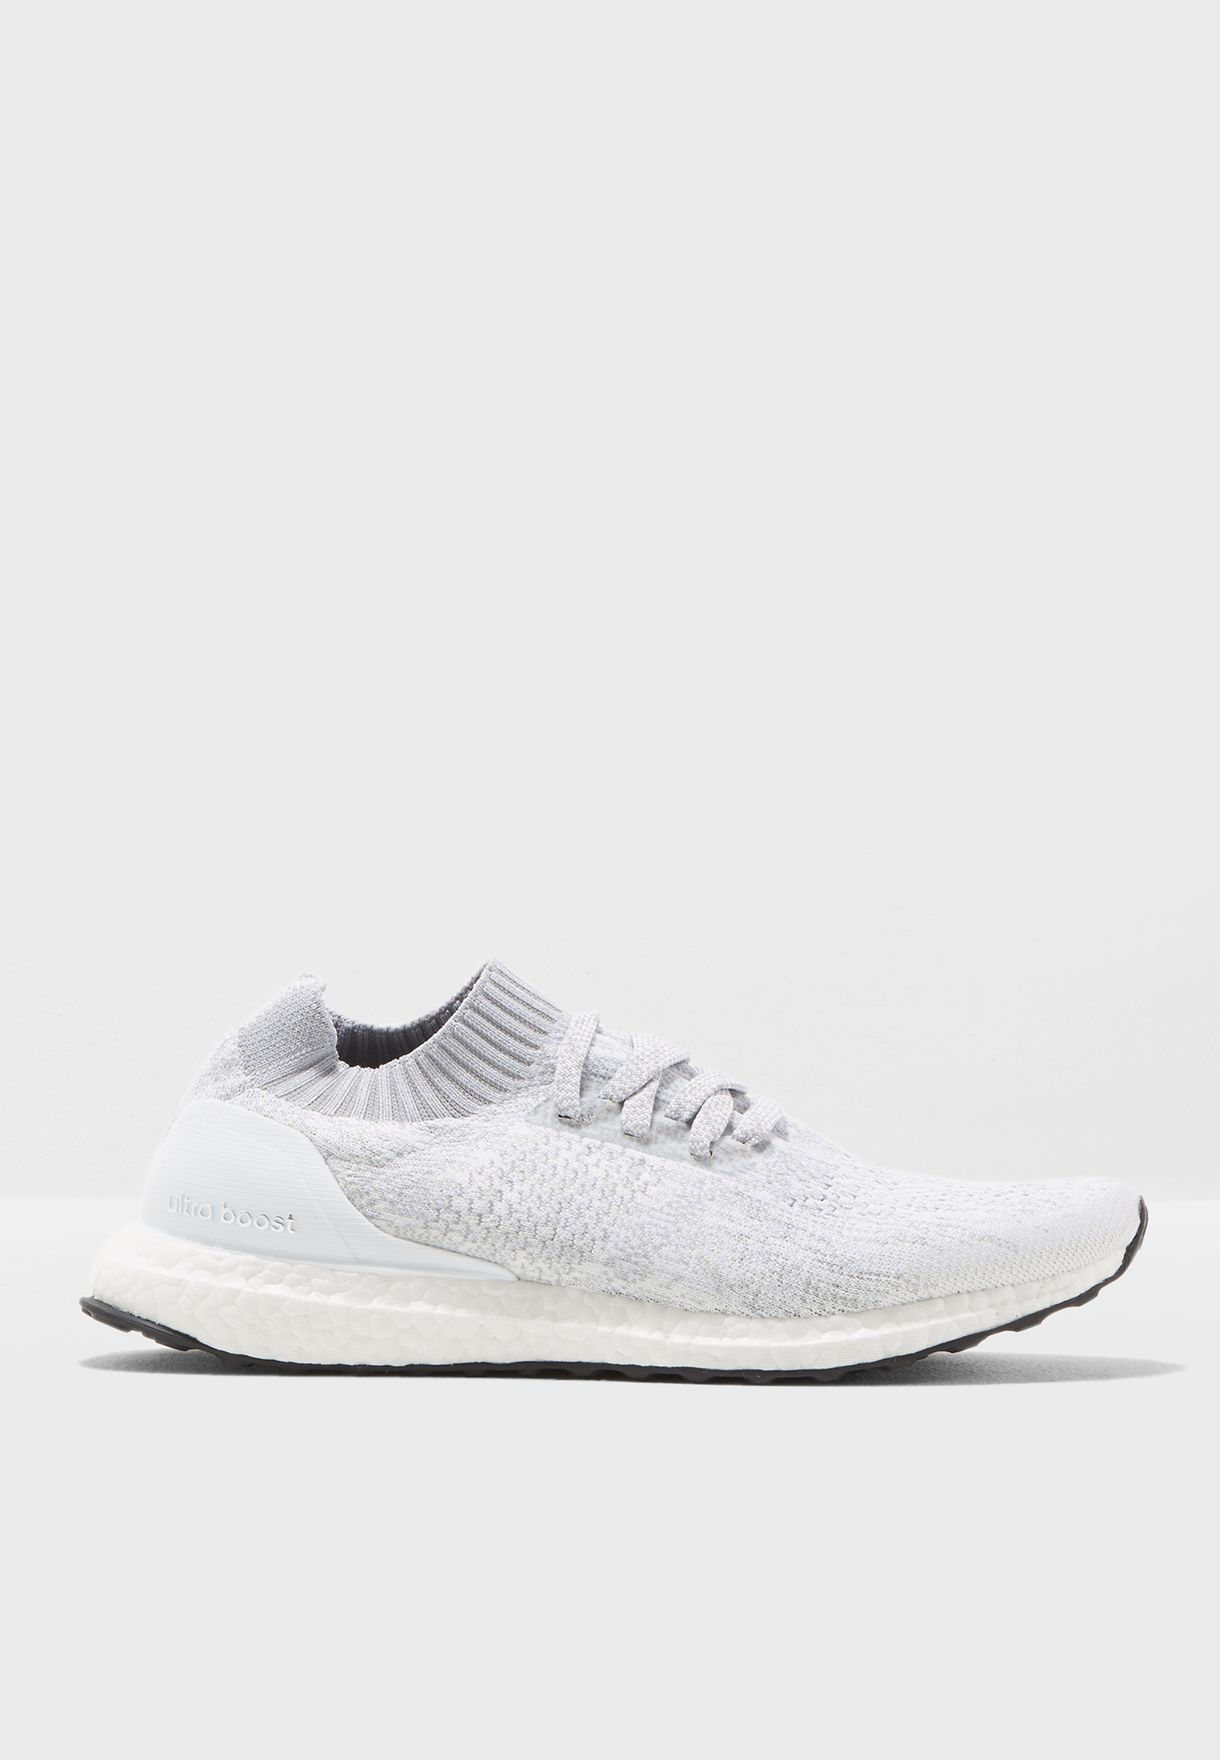 6db7f7b47 Shop adidas multicolor Ultraboost Uncaged DA9157 for Men in Saudi ...